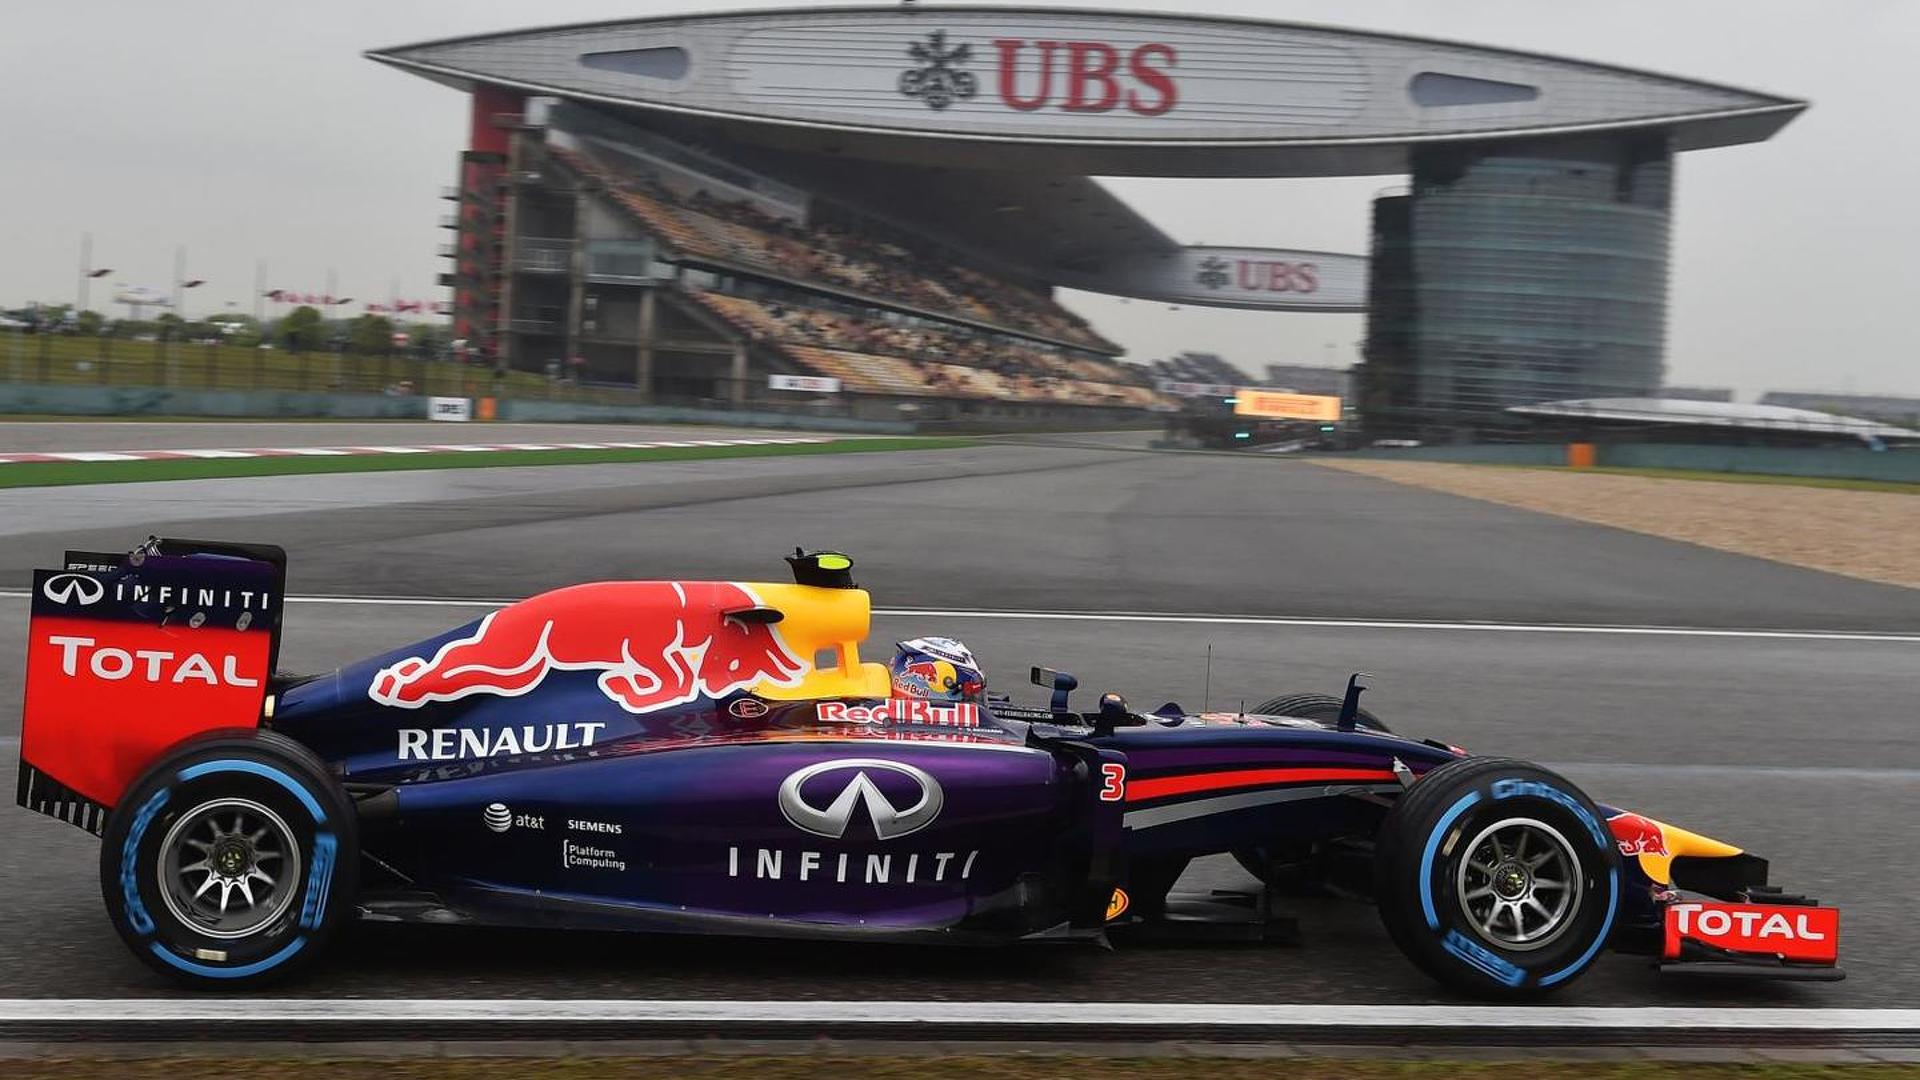 F1 could axe Friday morning practice to cut costs